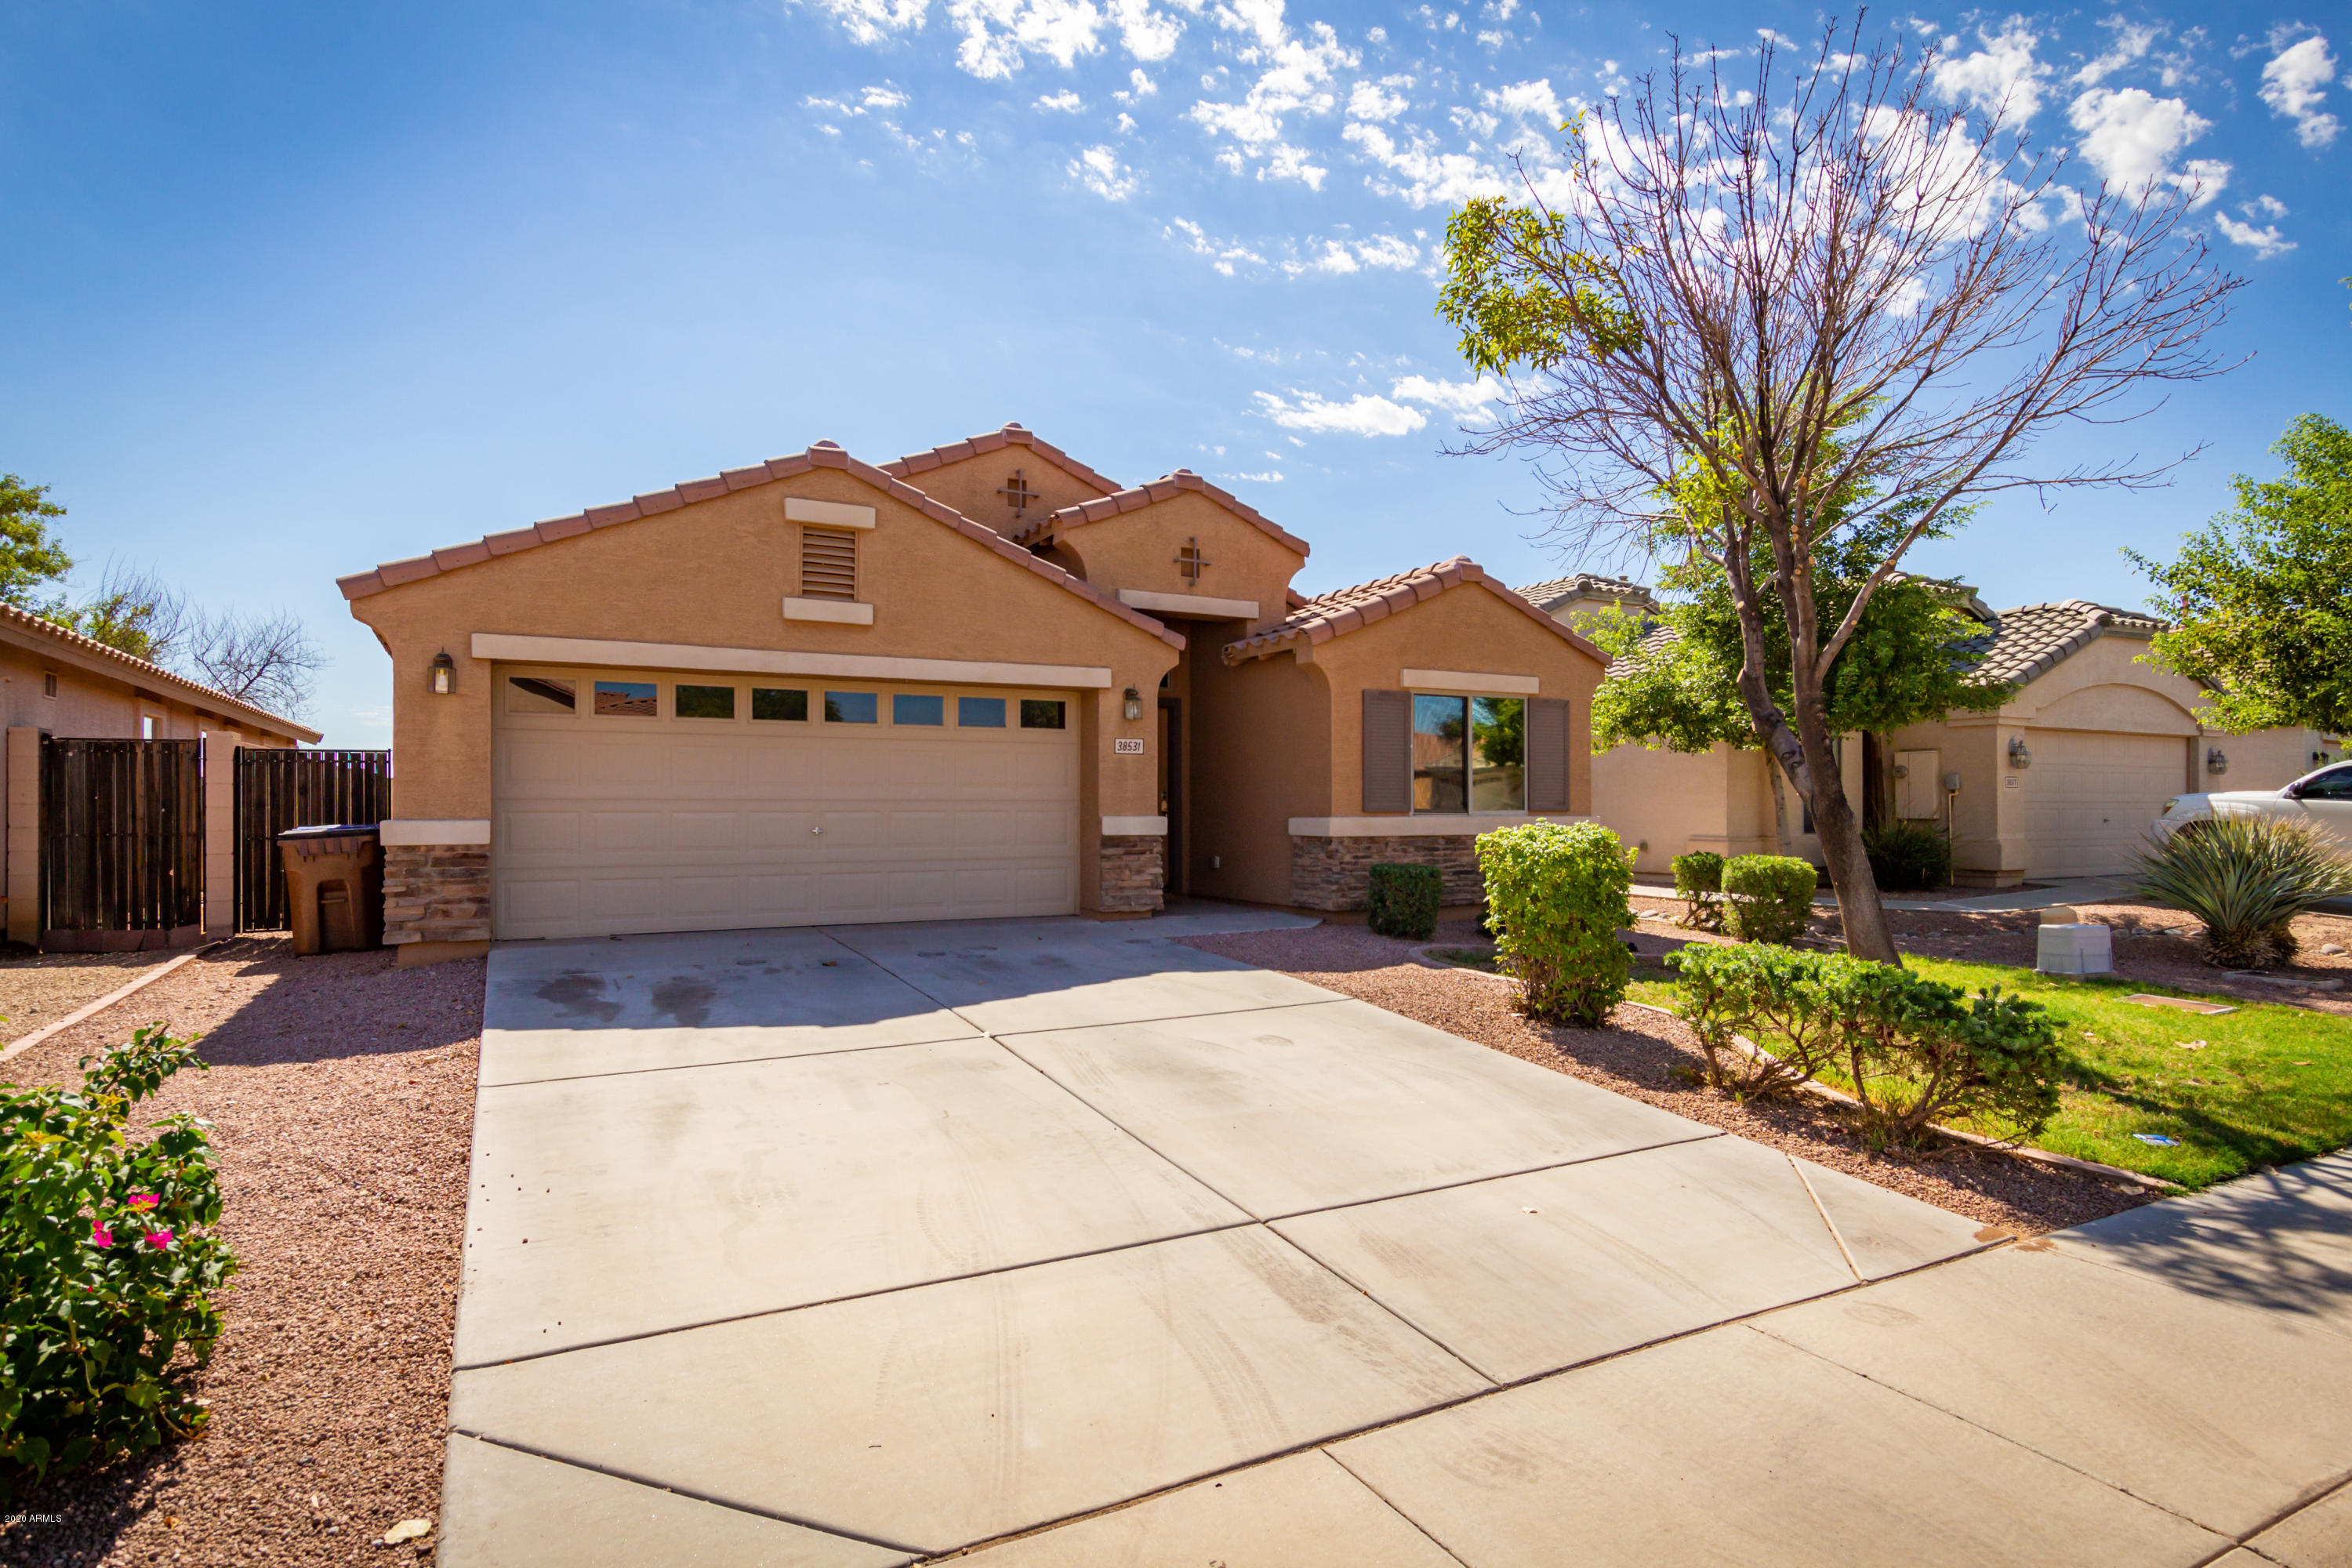 Photo of 38531 N JONATHAN Street, San Tan Valley, AZ 85140